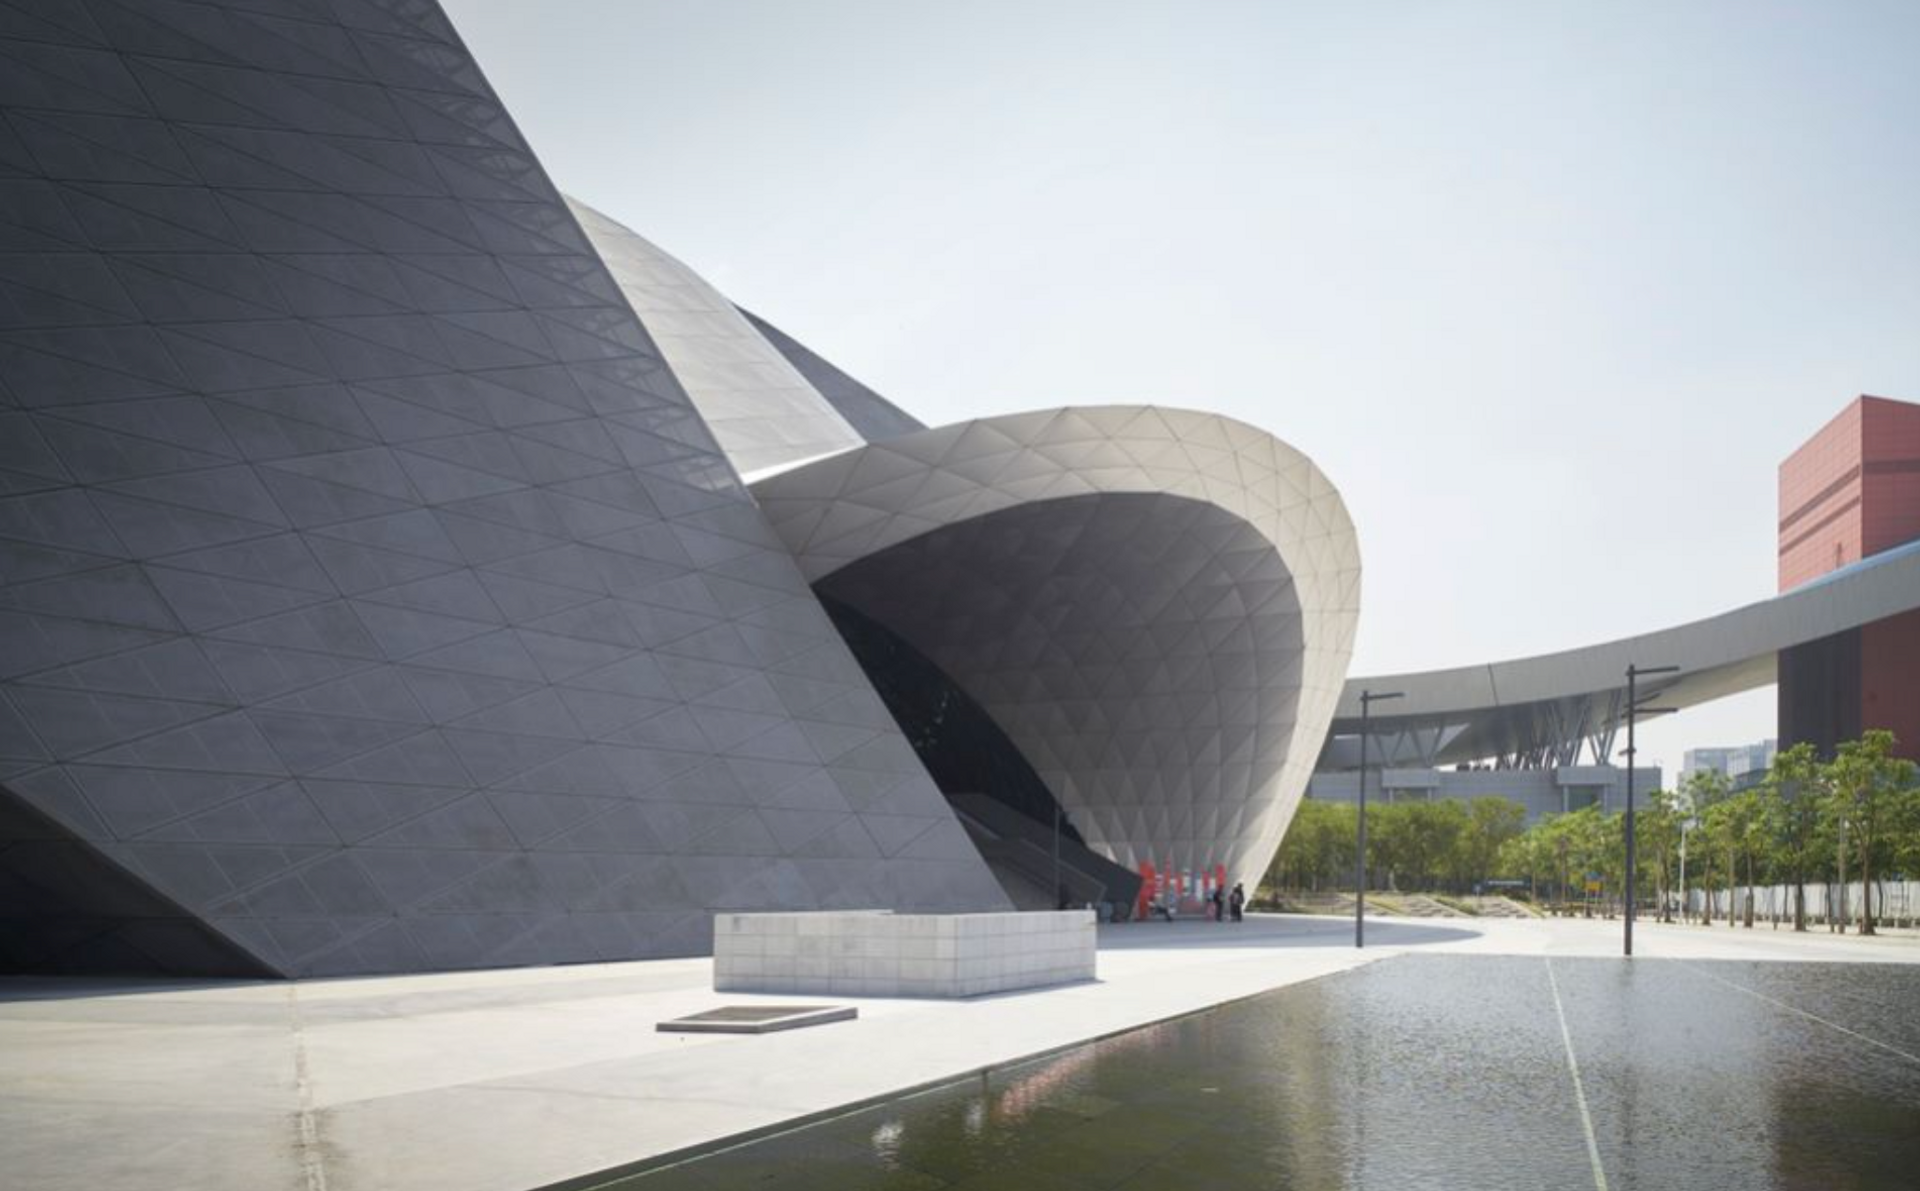 The first edition of DnA Shenzhen design and art fair is scheduled from 30 September to 4 October at the Shenzhen Museum of Contemporary Art and Urban Planning Image courtesy of DnA Shenzhen